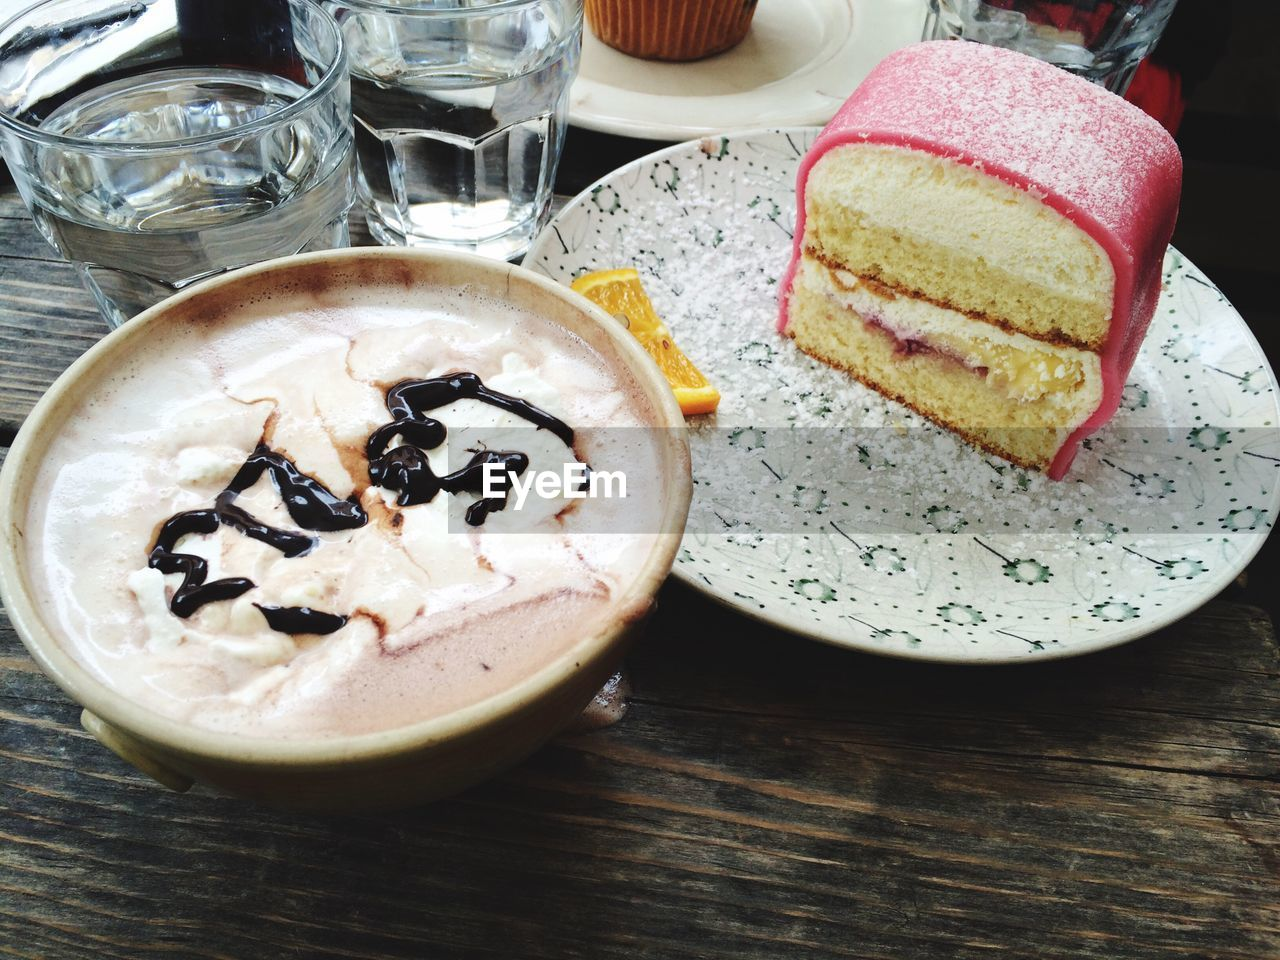 High angle view of coffee and cake slice on wooden table